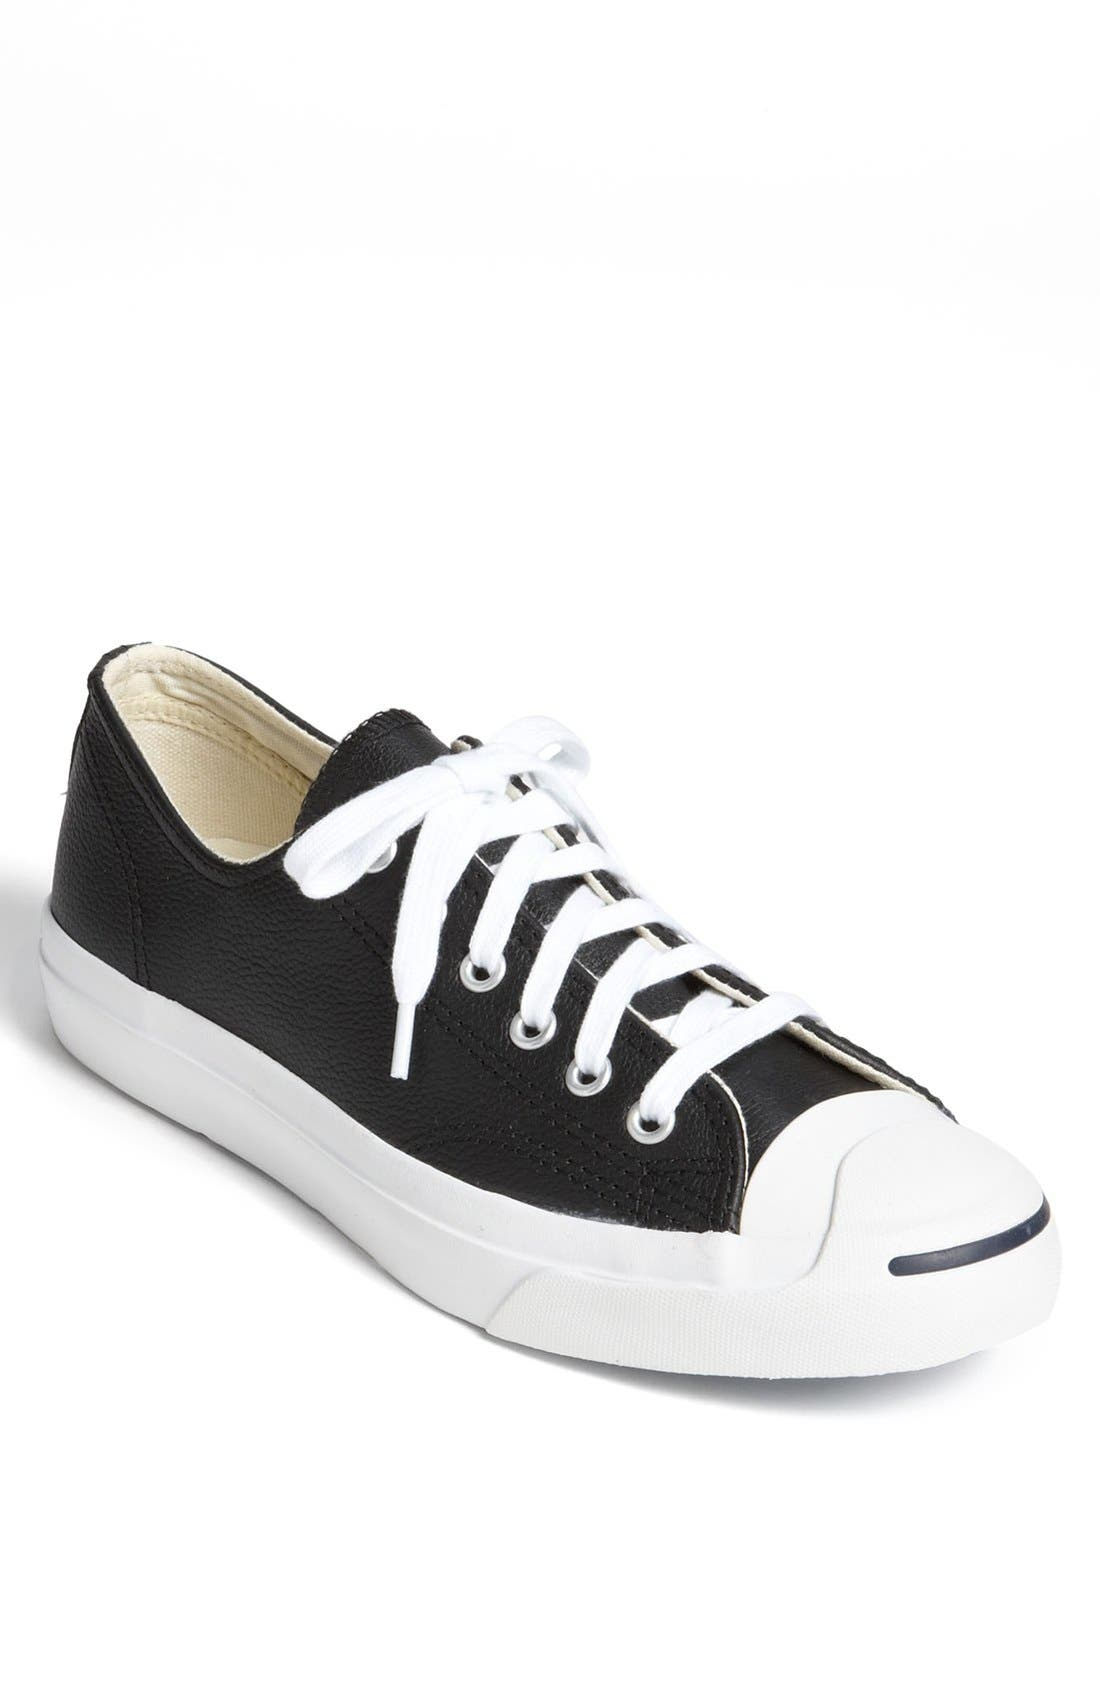 Main Image - Converse 'Jack Purcell' Leather Sneaker (Men)